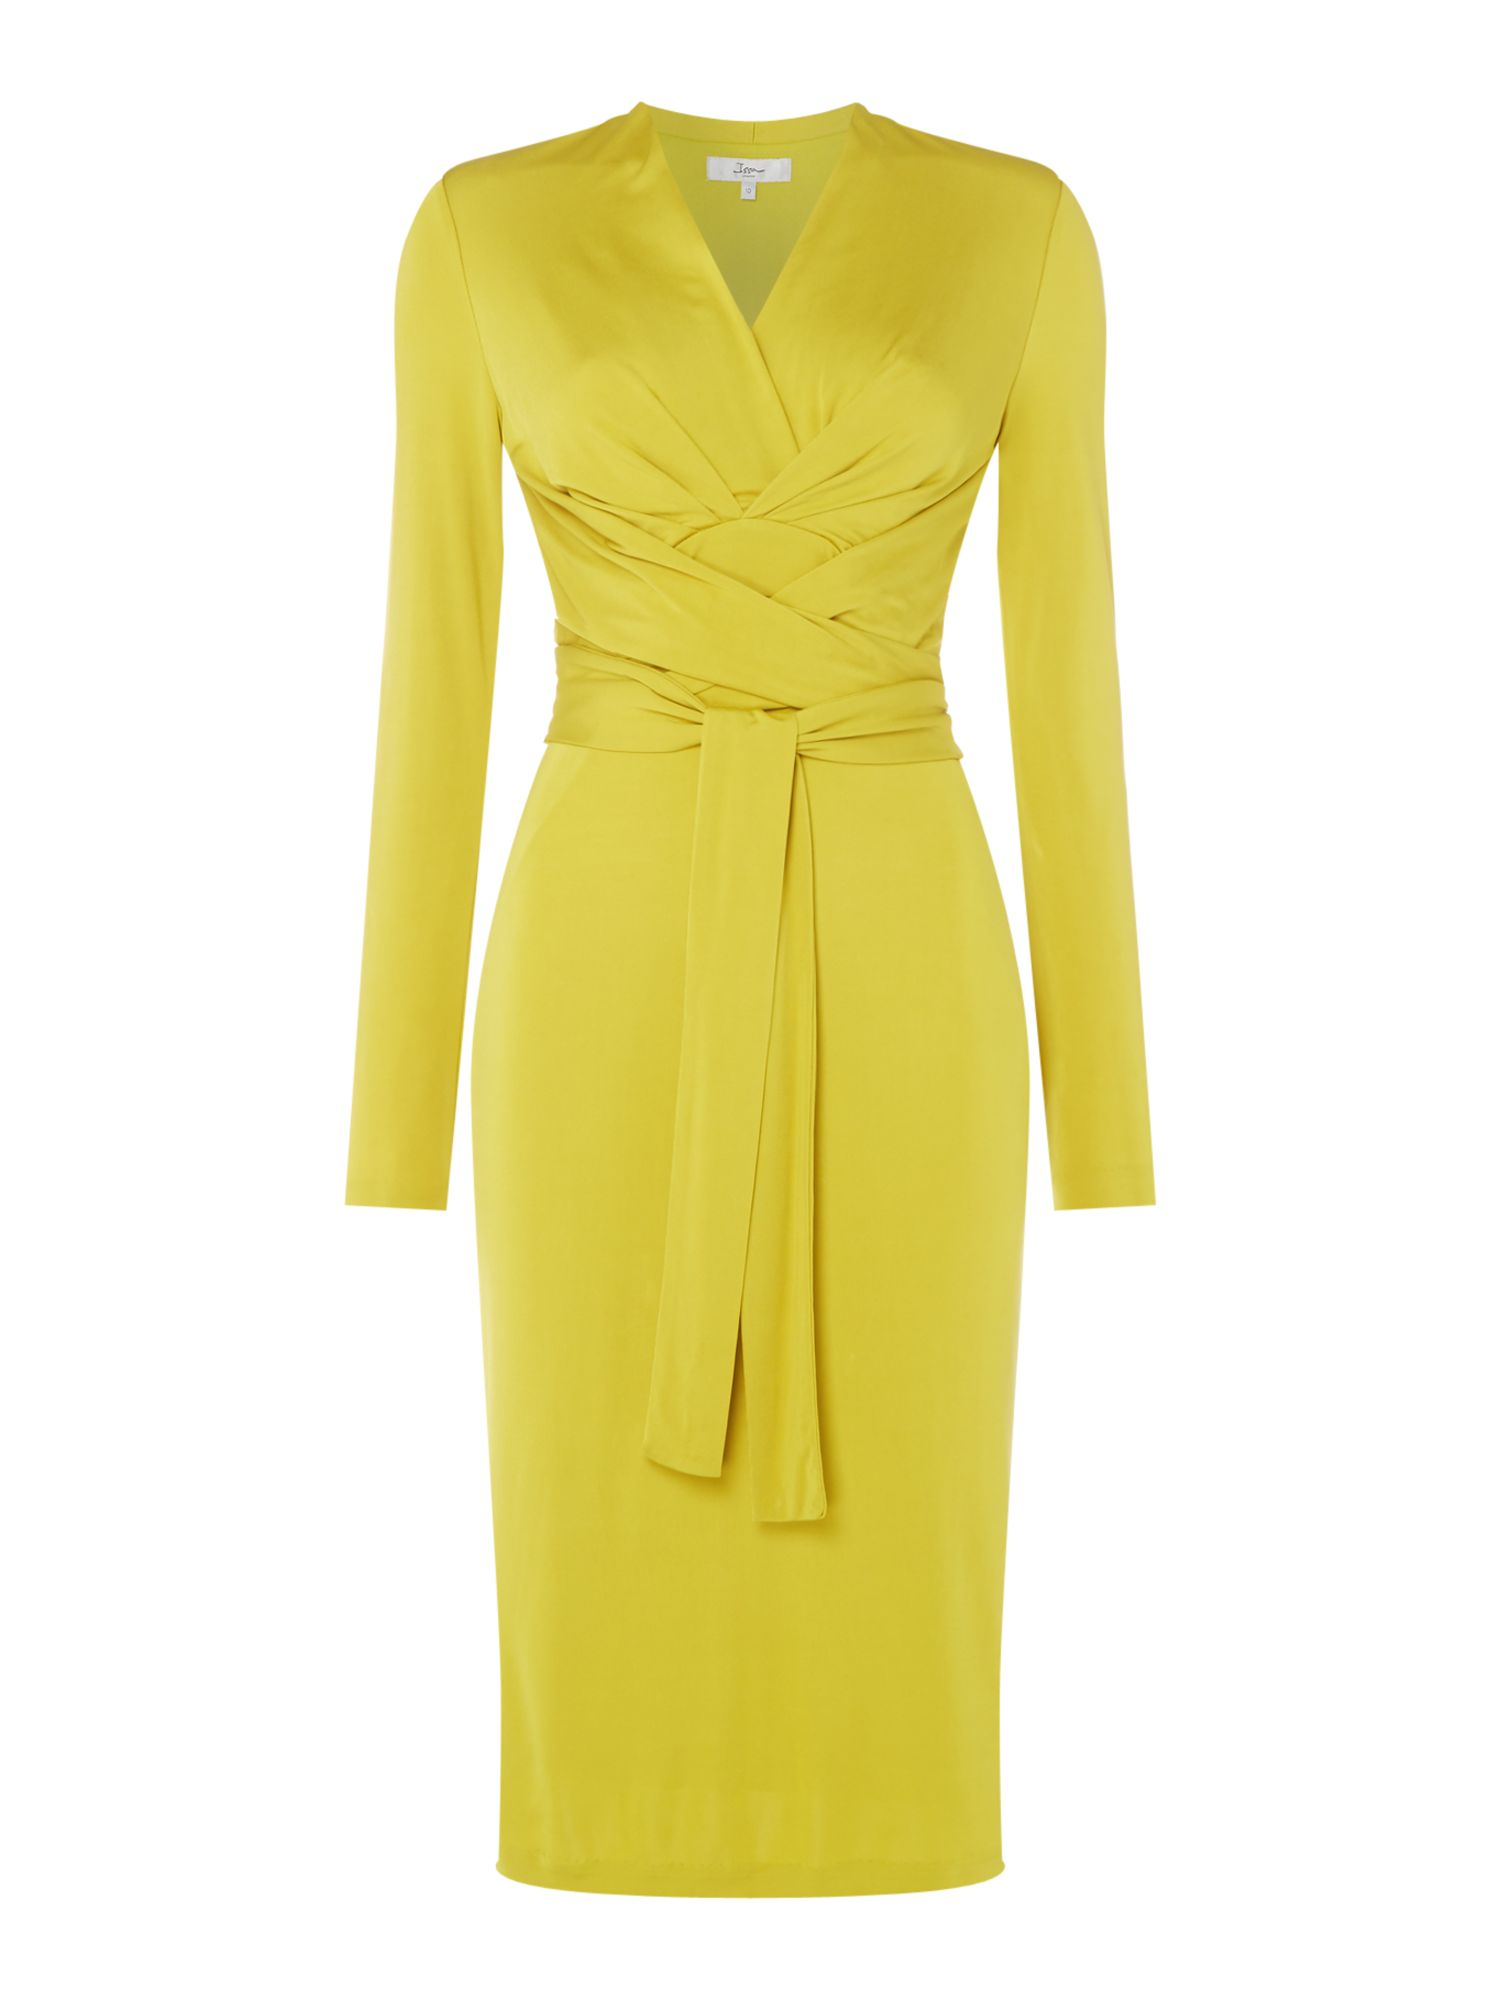 ISSA Kate Tie Wrap Dress, Lime